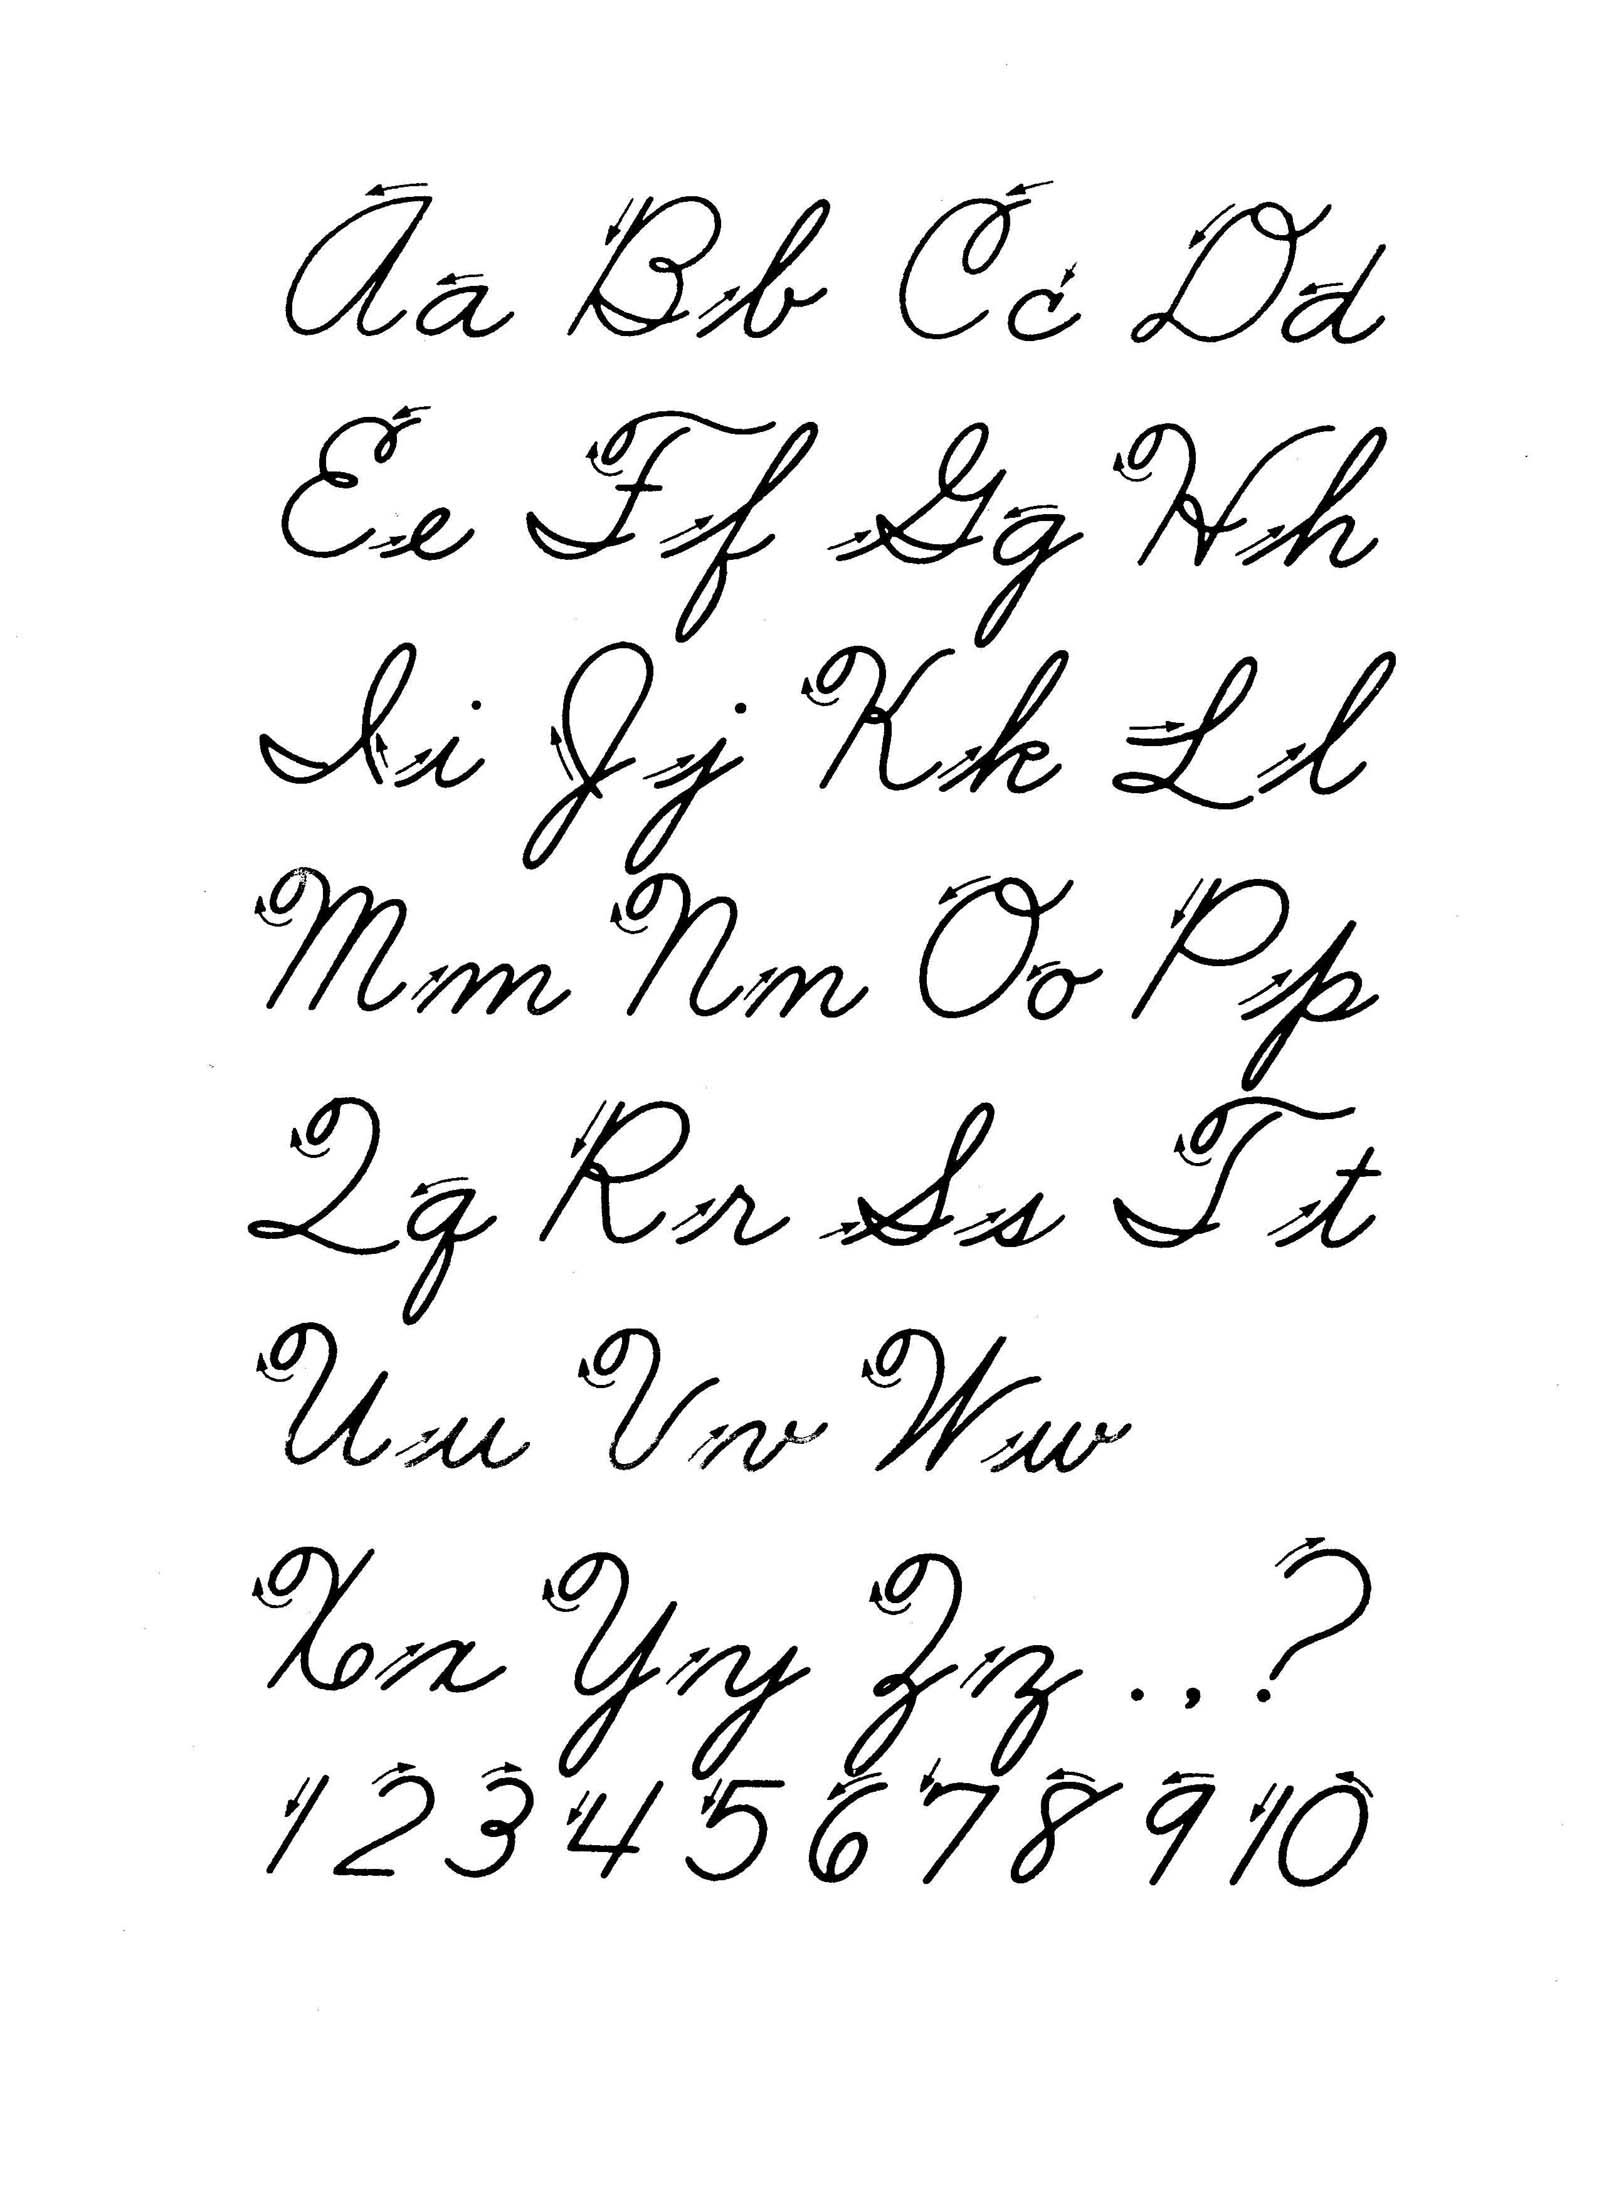 Worksheets Images Of All Alphabet Cursive Letter free printable cursive alphabet letters design lettering see 5 best images of chart writing alphabet